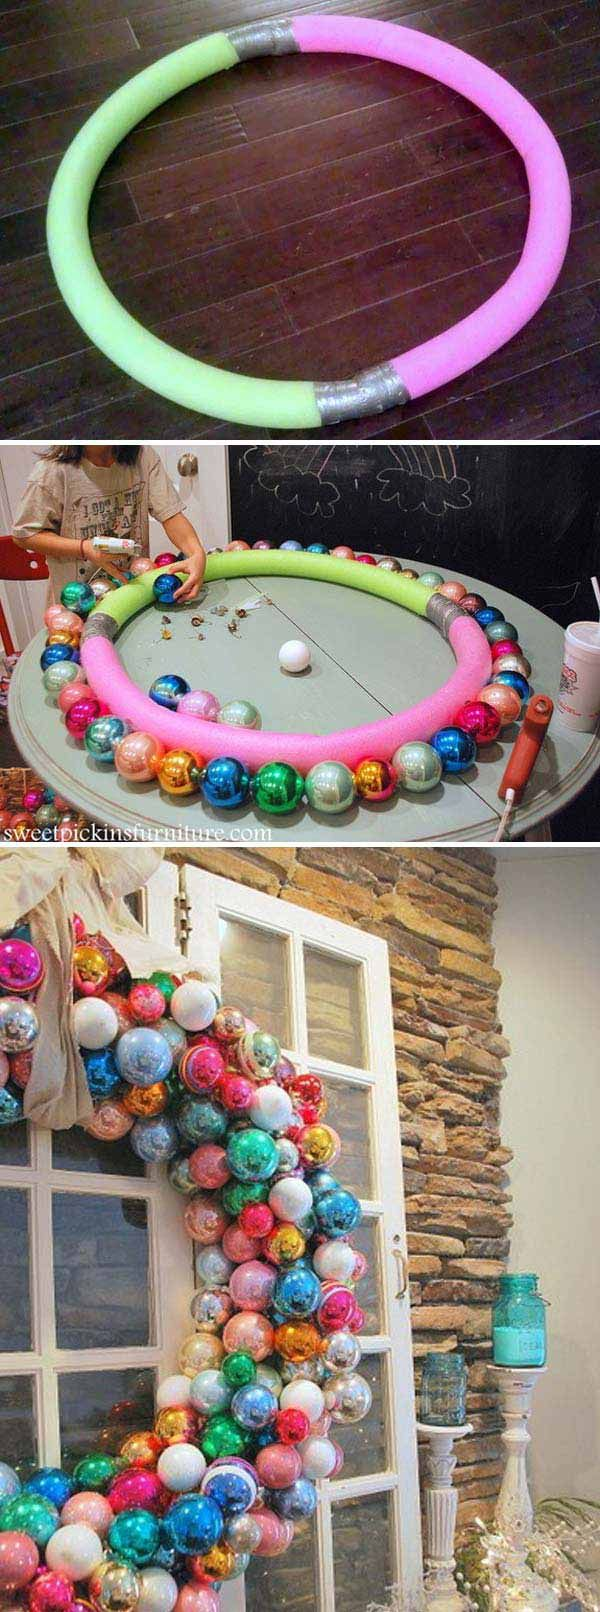 When you think of pool noodles, maybe you just think of water, sunshine and fun, however there are a lot of new and creative holiday decorations made from pool noodles. One such example is making a Christmas wreath for your front door. Most of the pool noodle decorations are easy and budget-friendly, so they are […]